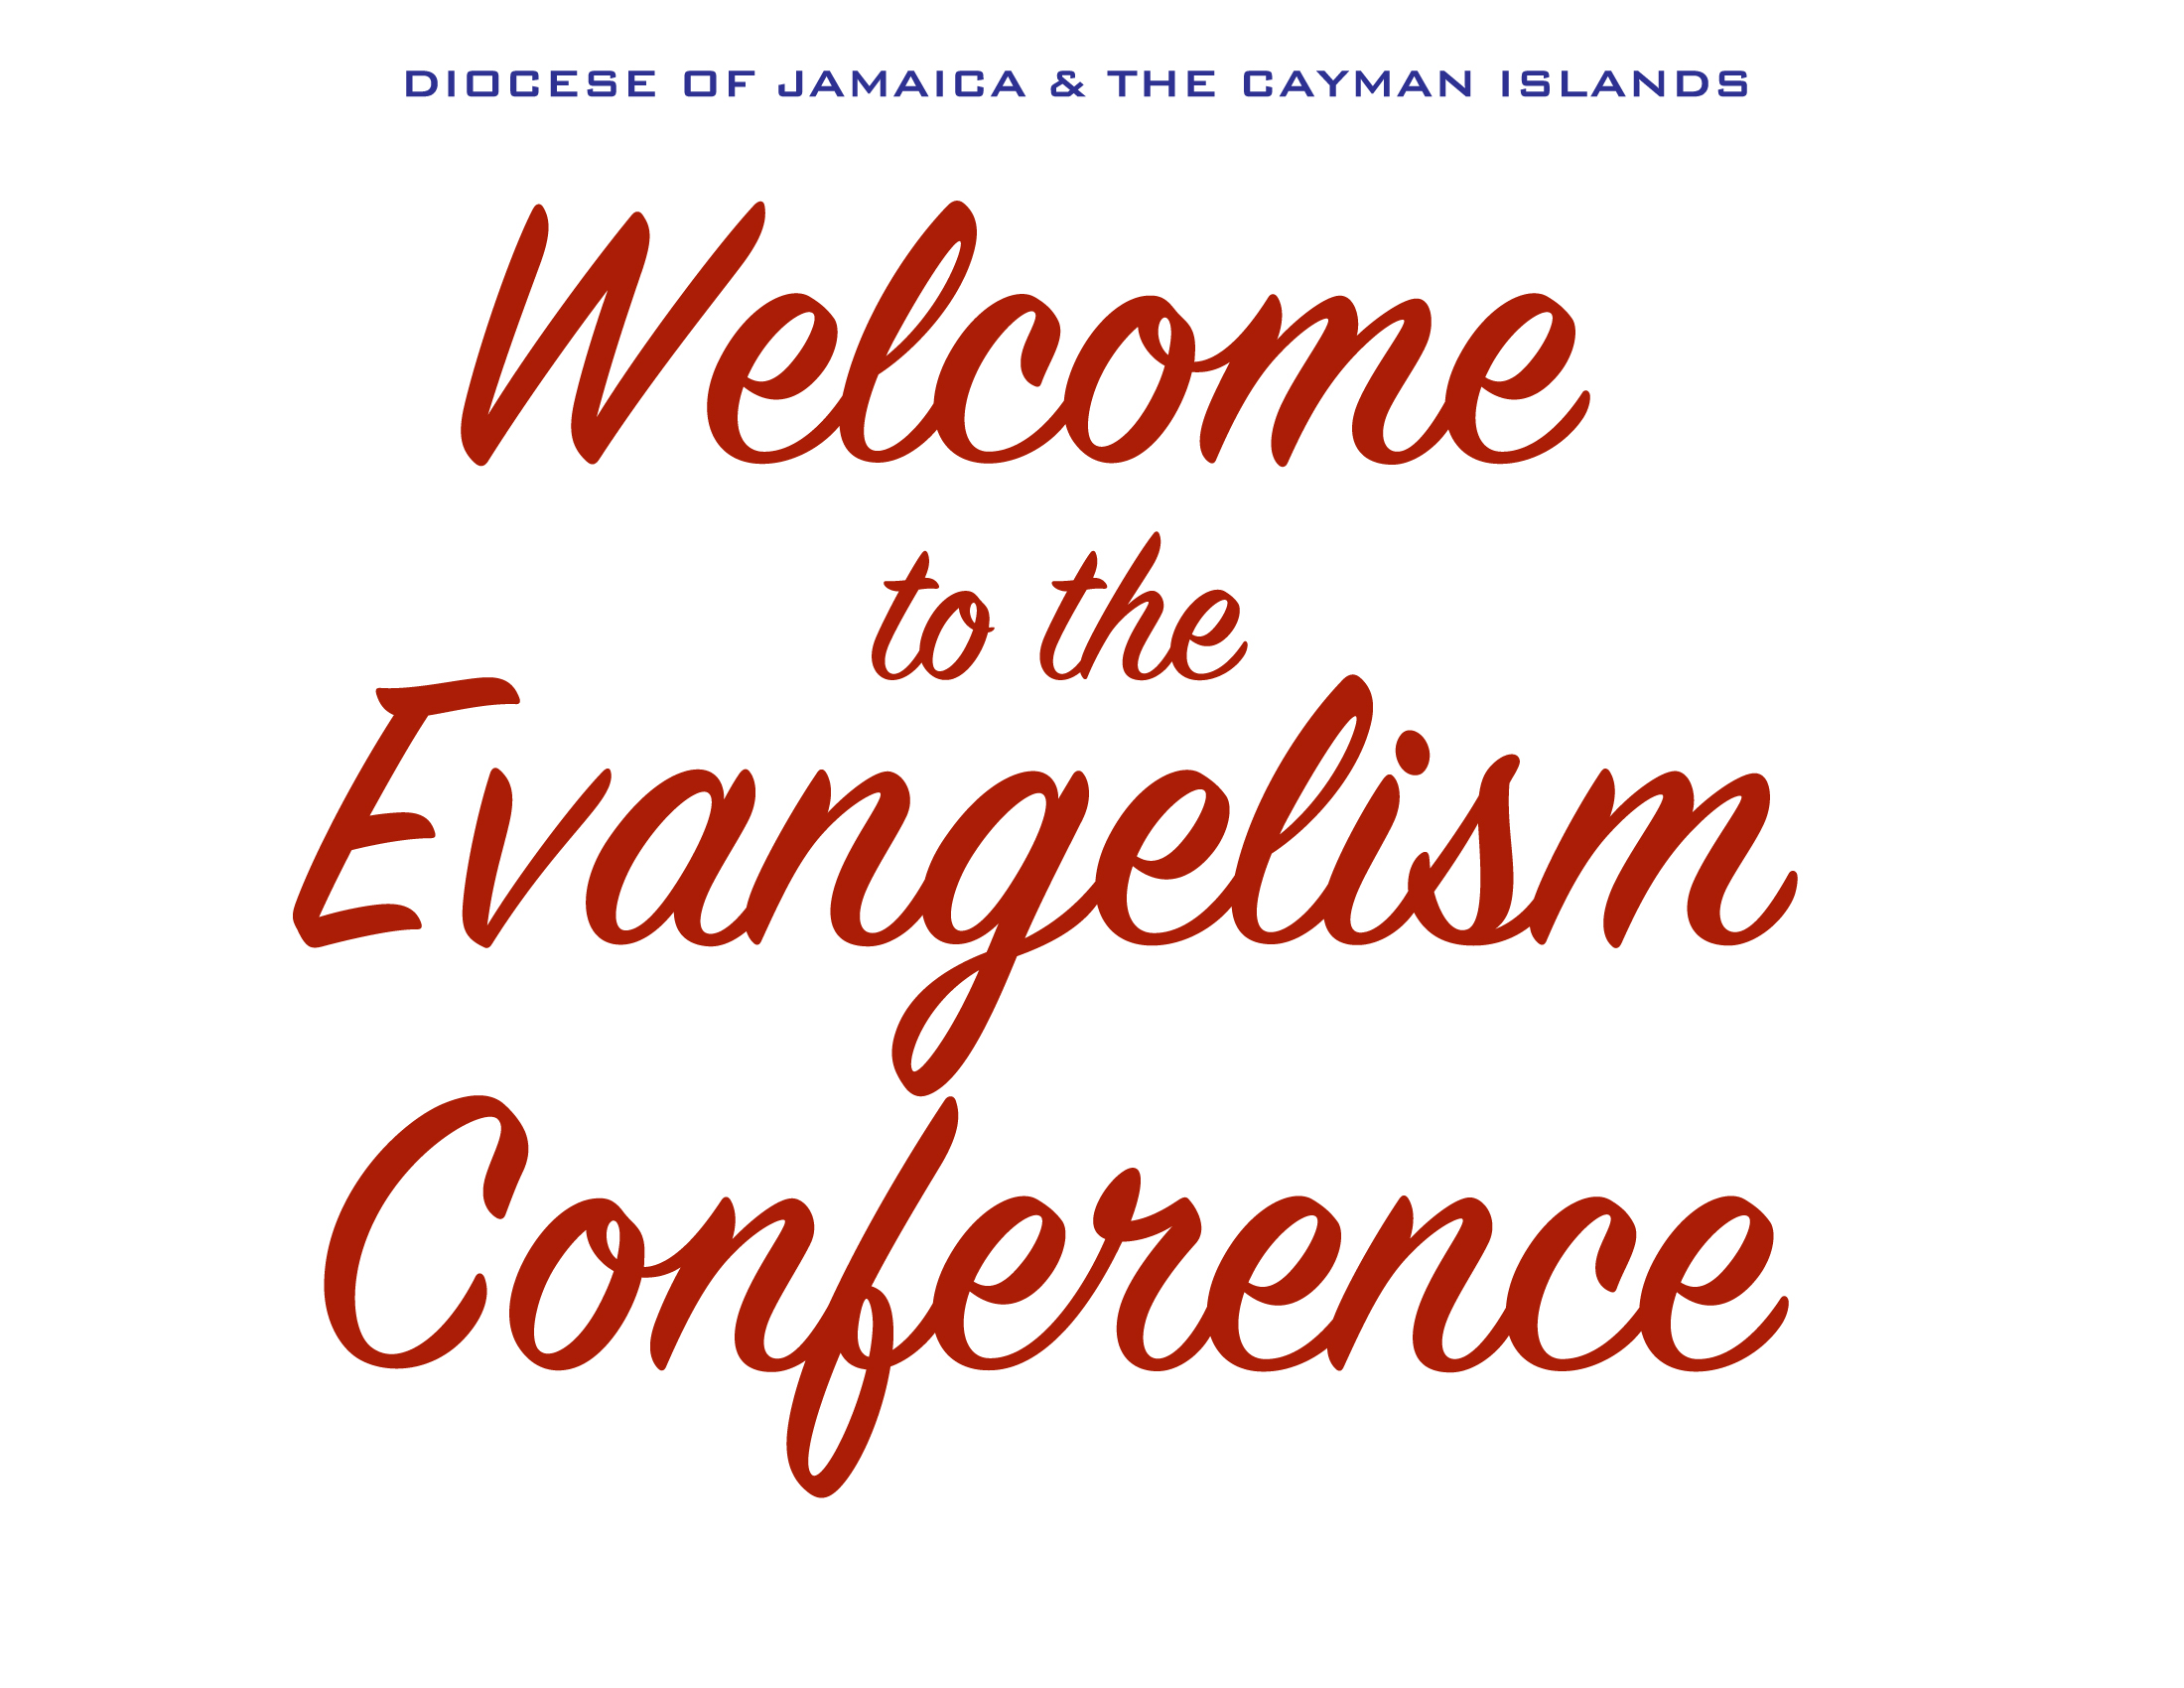 Church Army Evangelism Conference – Welcome Address